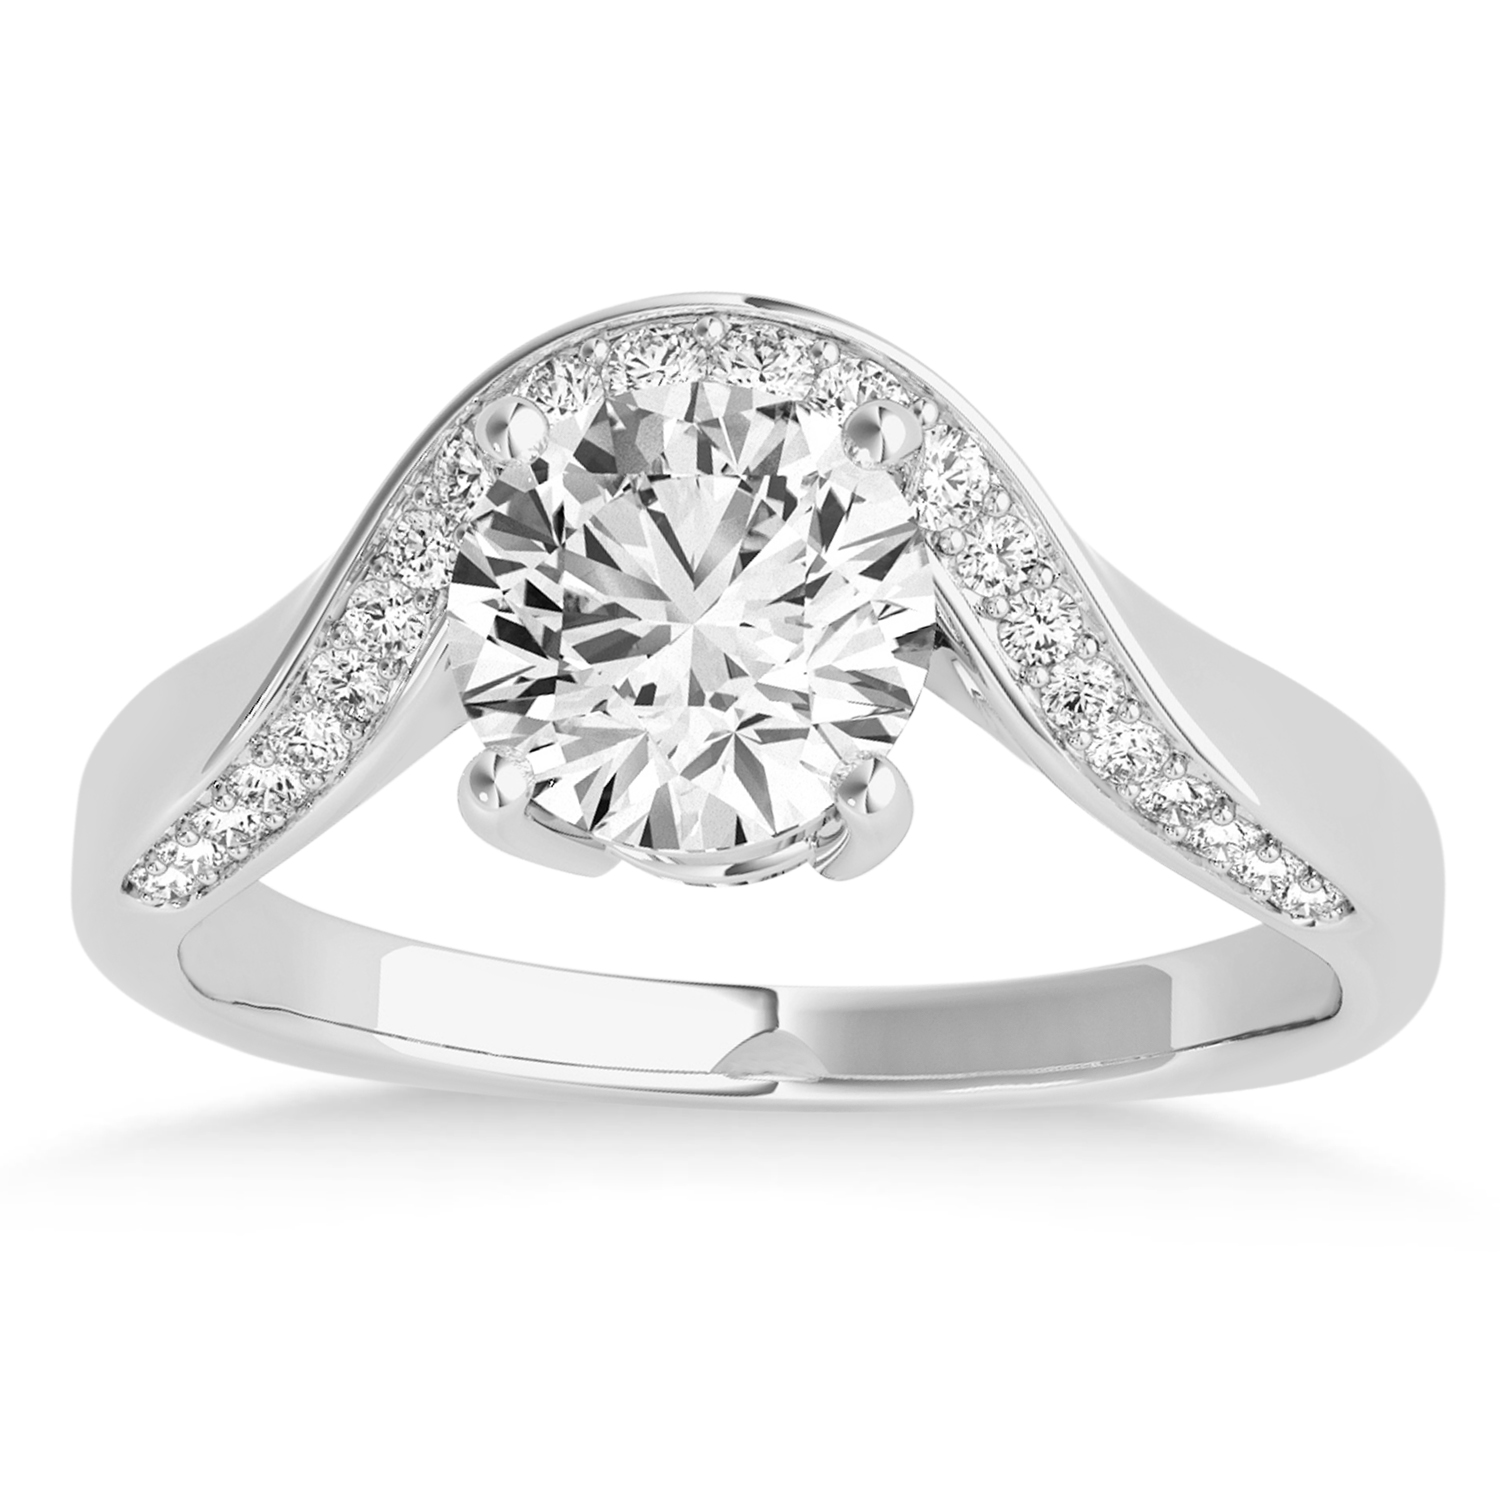 Diamond Euro Shank Curved Engagement Ring in 14k White Gold (0.16ct)